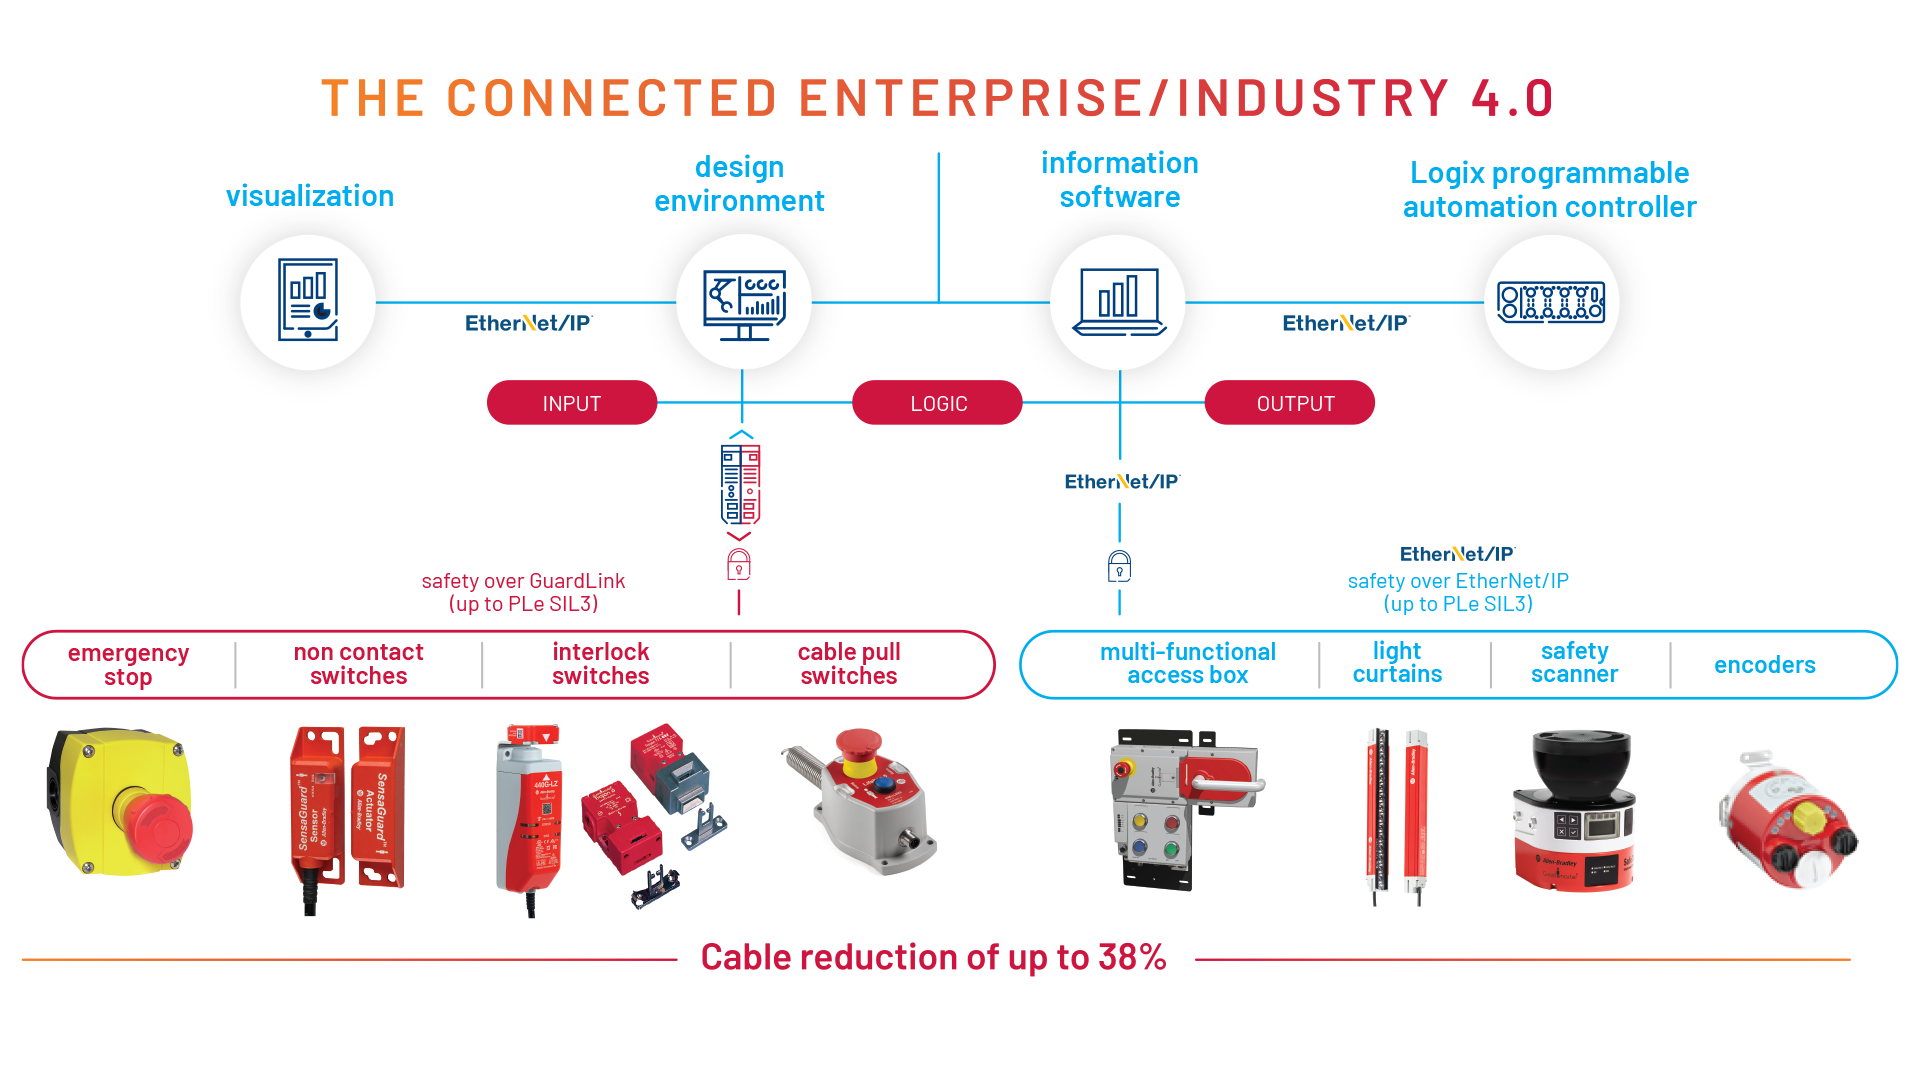 Diagram illustrating the benefits of Smart Safety devices within The Connected Enterprise and how they all connect